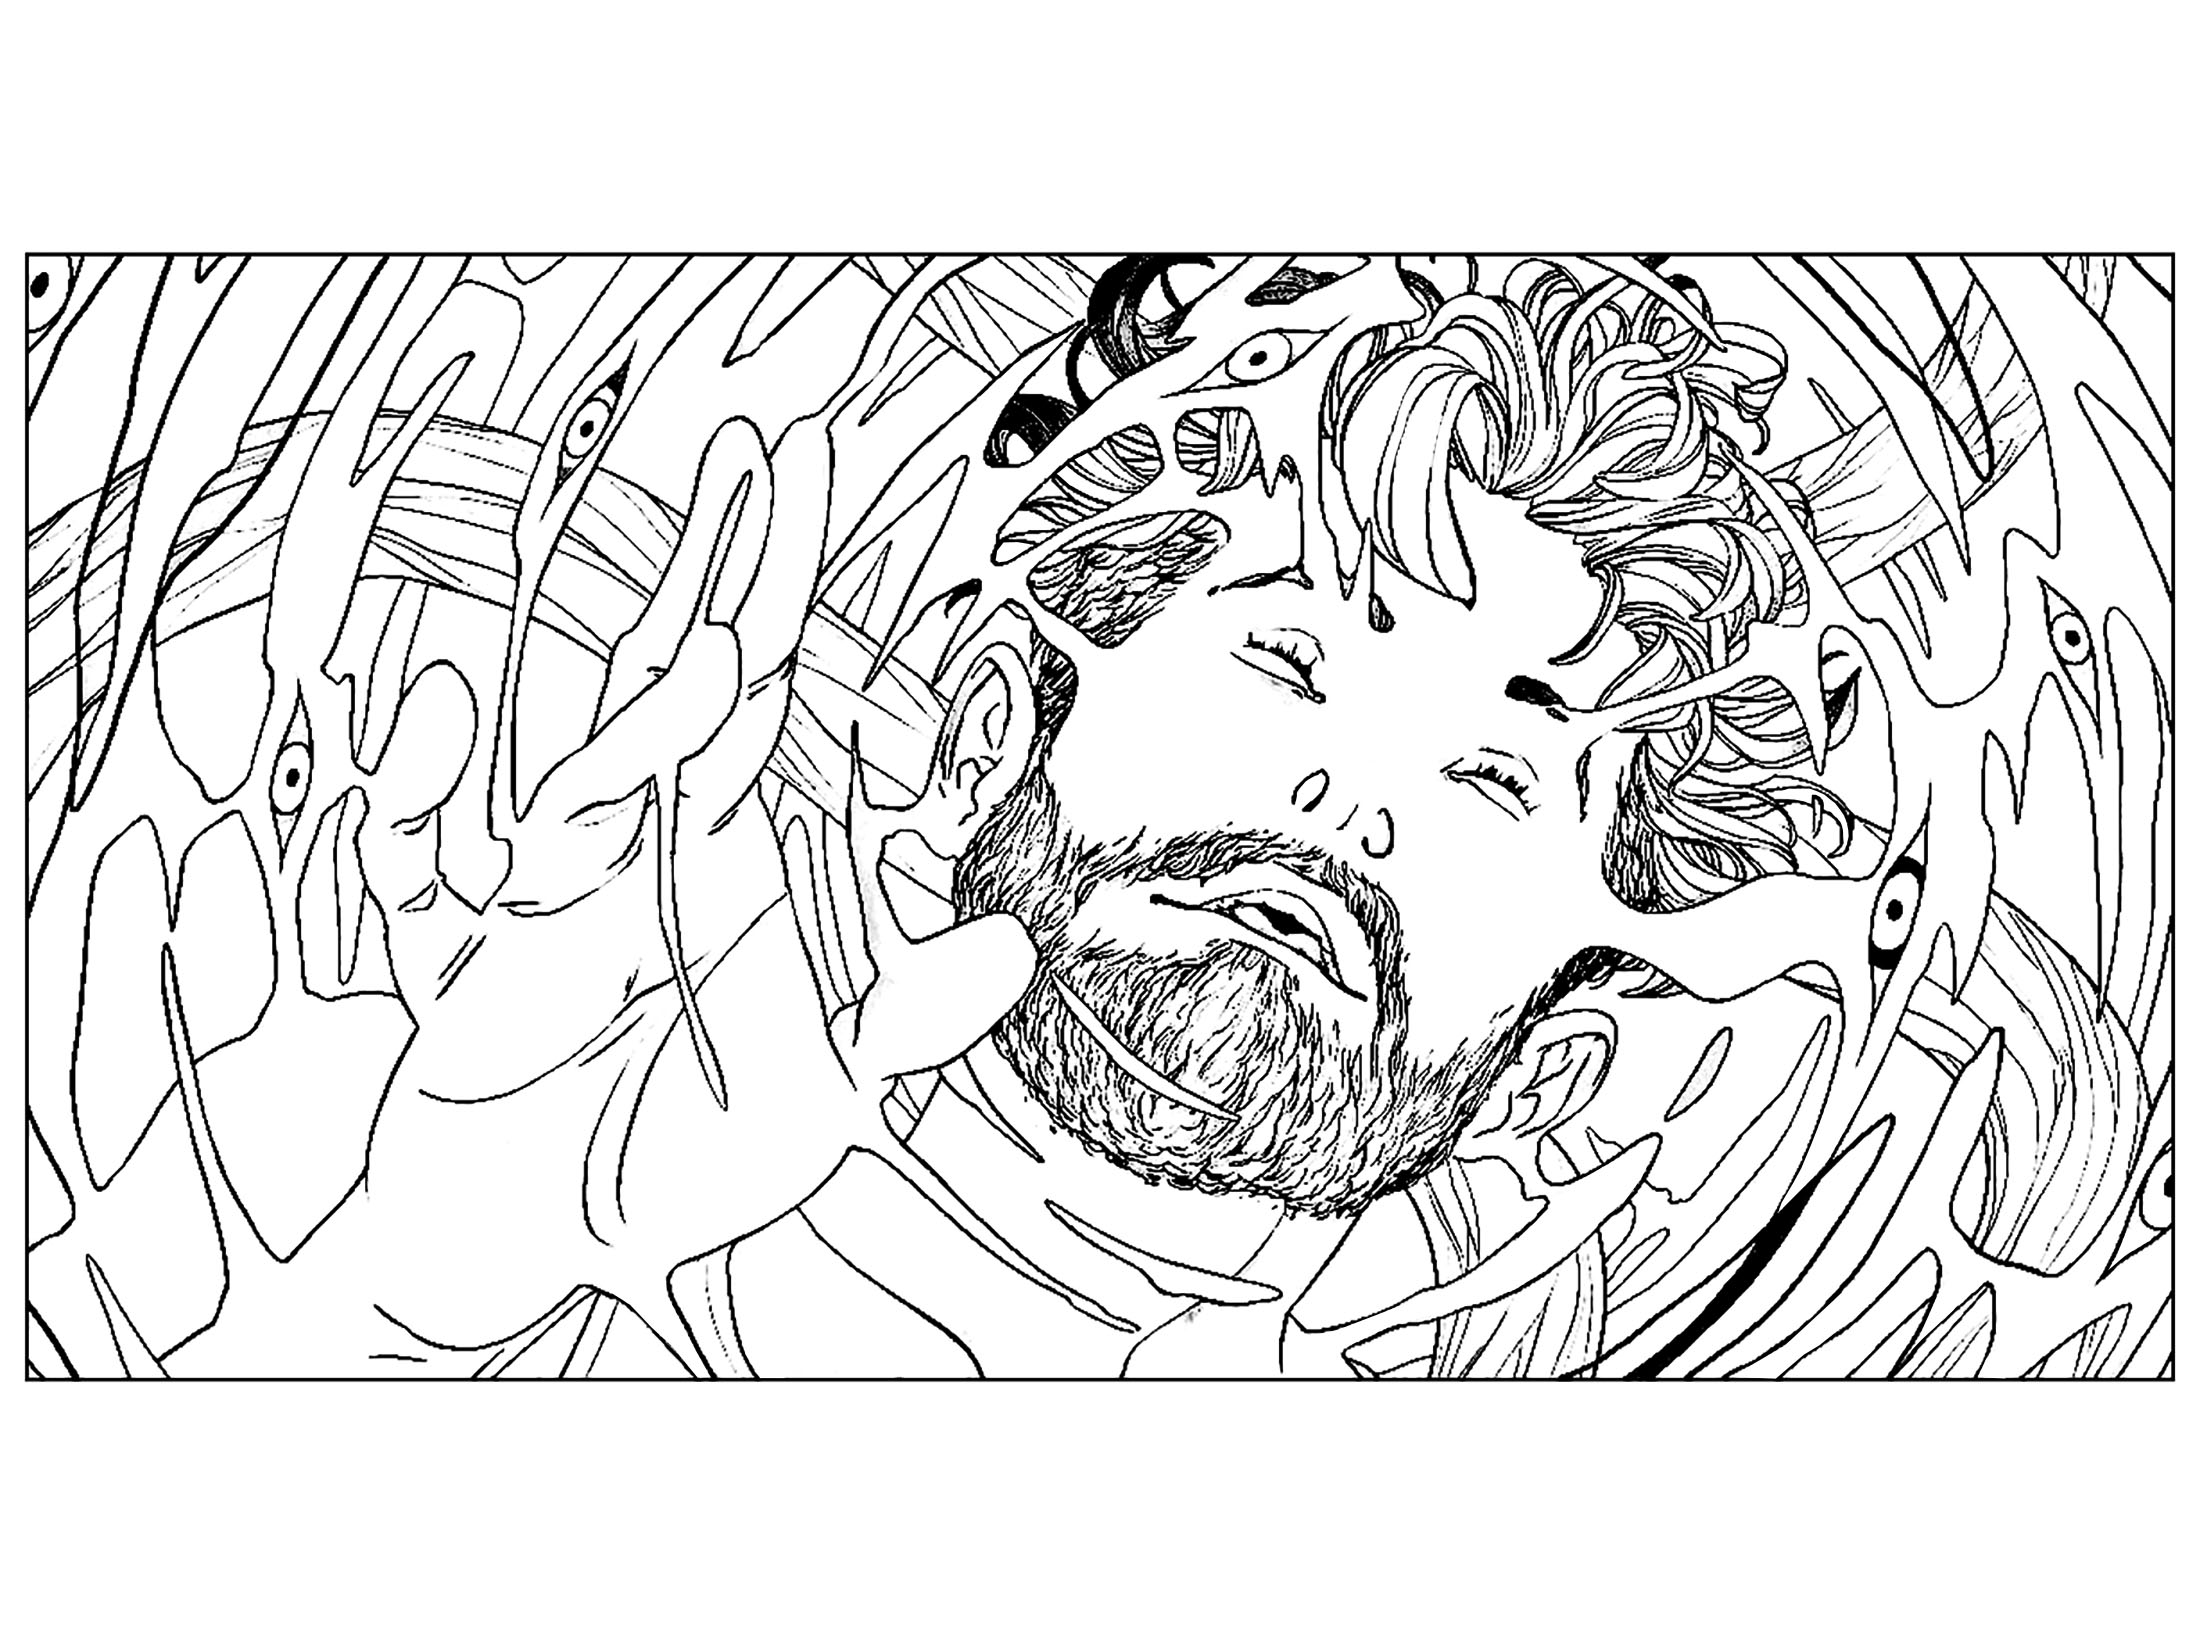 Coloriage Adulte Personnage.Homme Psychedelique Psychedelique Coloriages Difficiles Pour Adultes